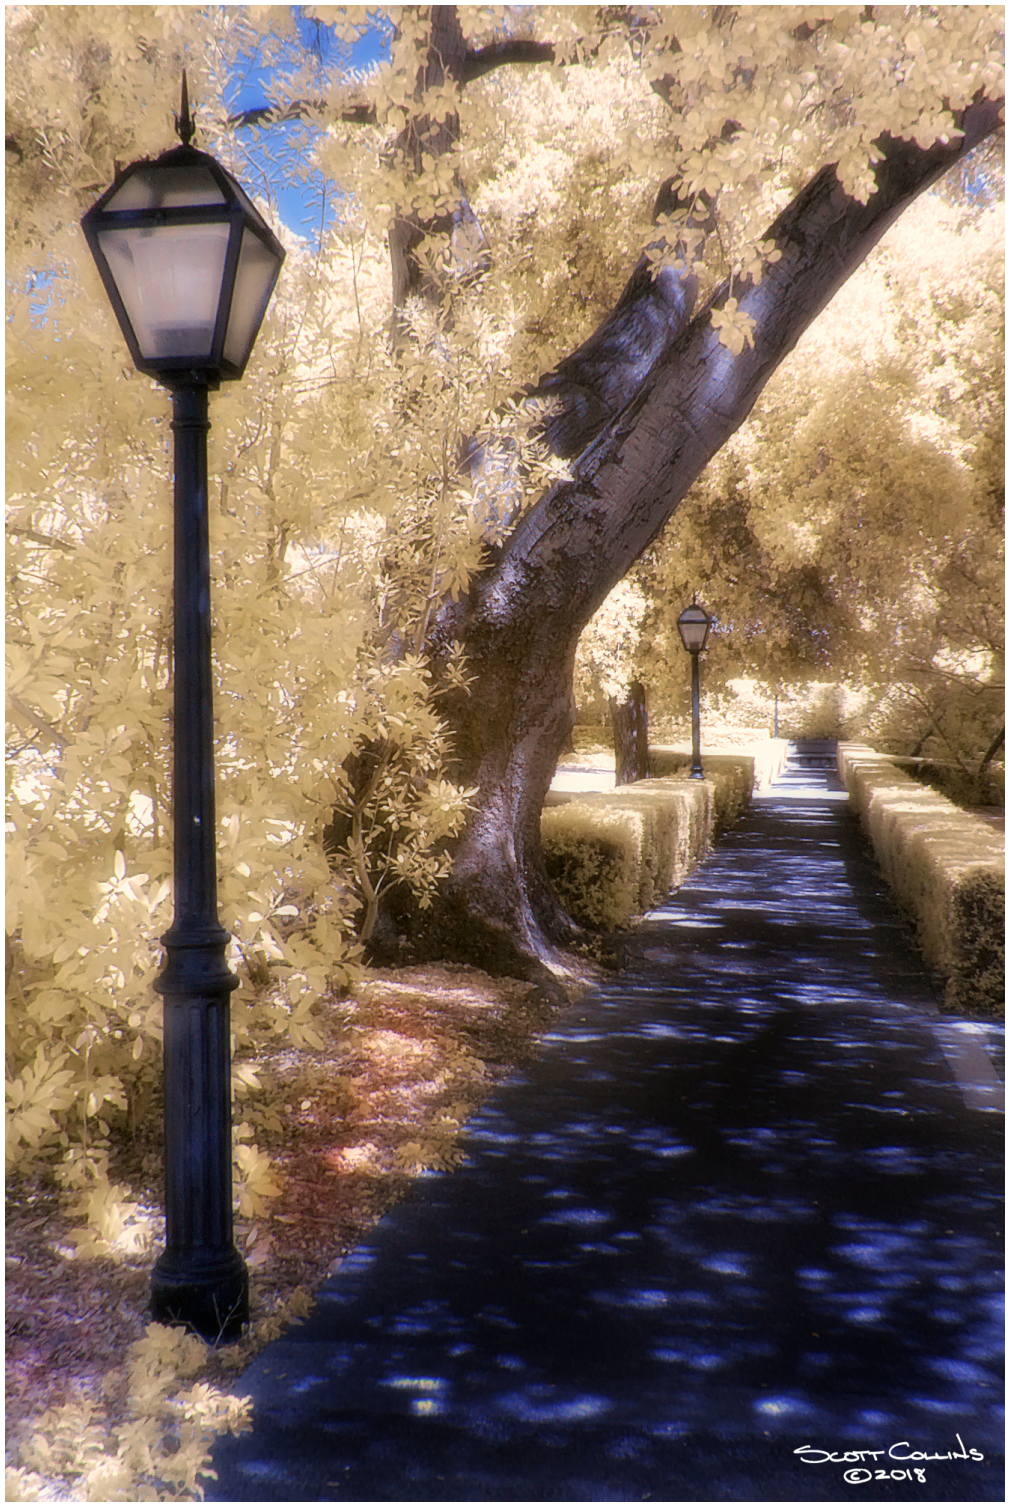 Infrared Scripps College